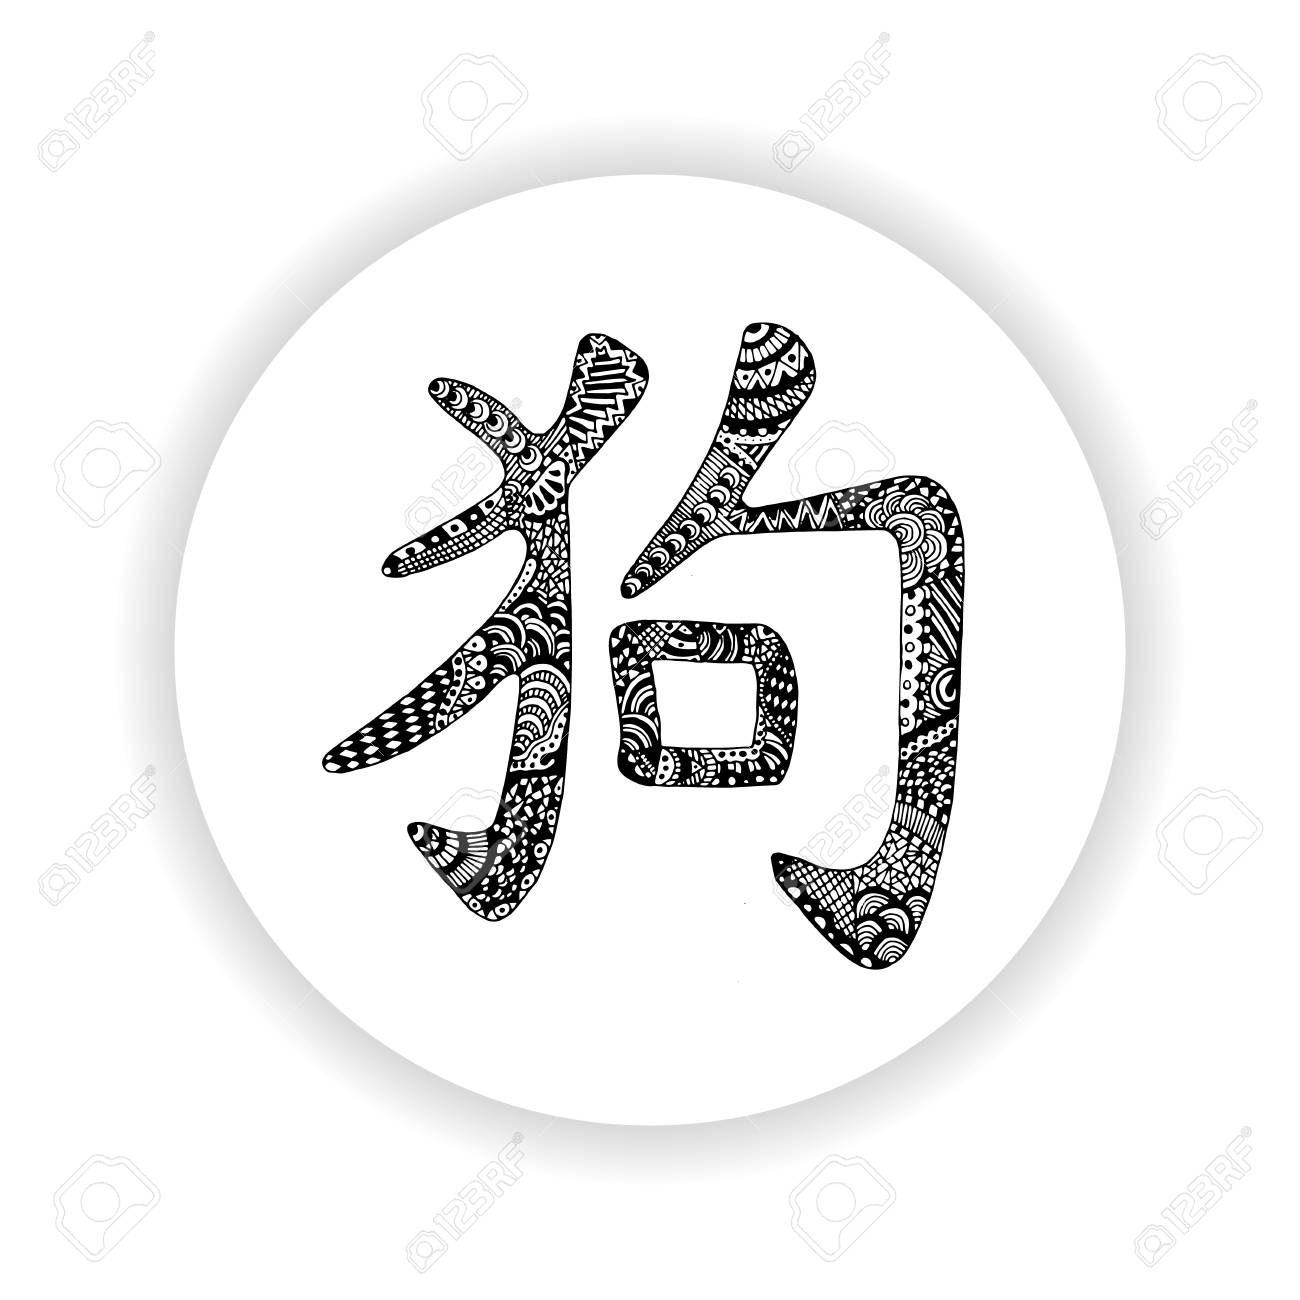 Black Dog Hieroglyph Chinese Symbol With Hand Drawn Ornate